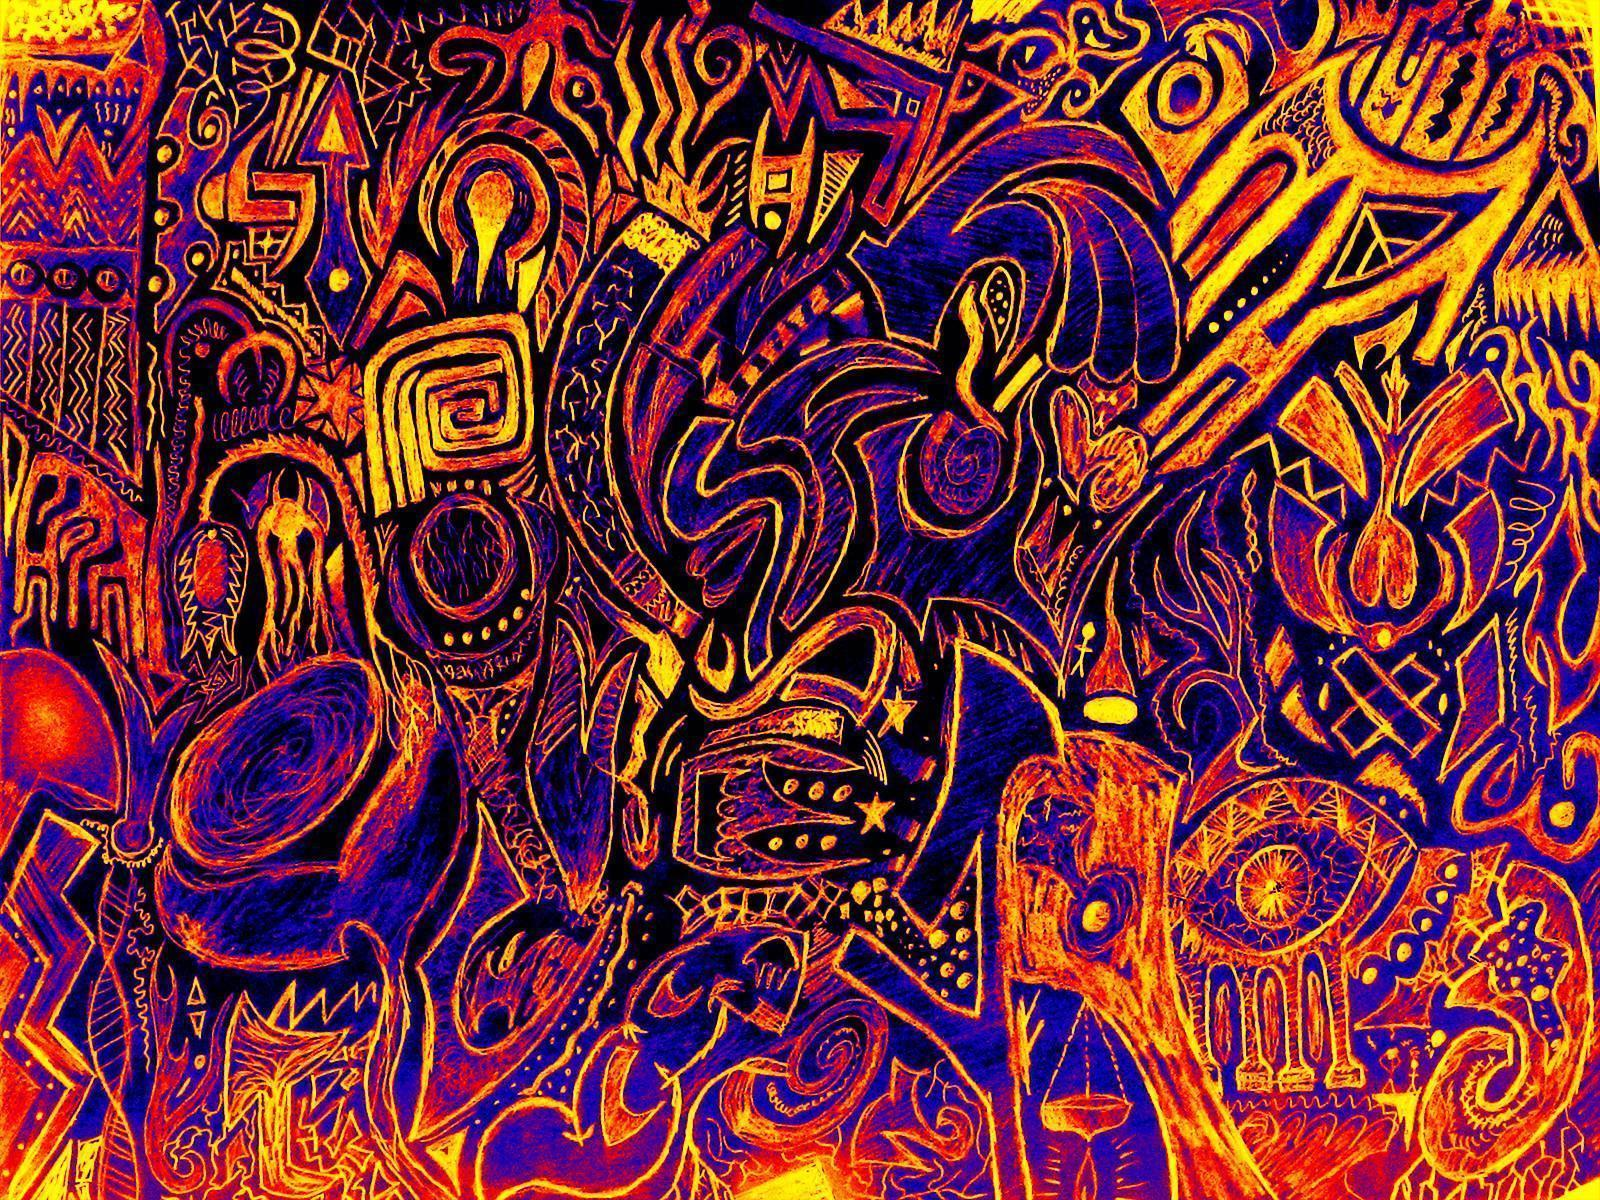 Psychedelic Art Wallpaper Images & Pictures - Becuo